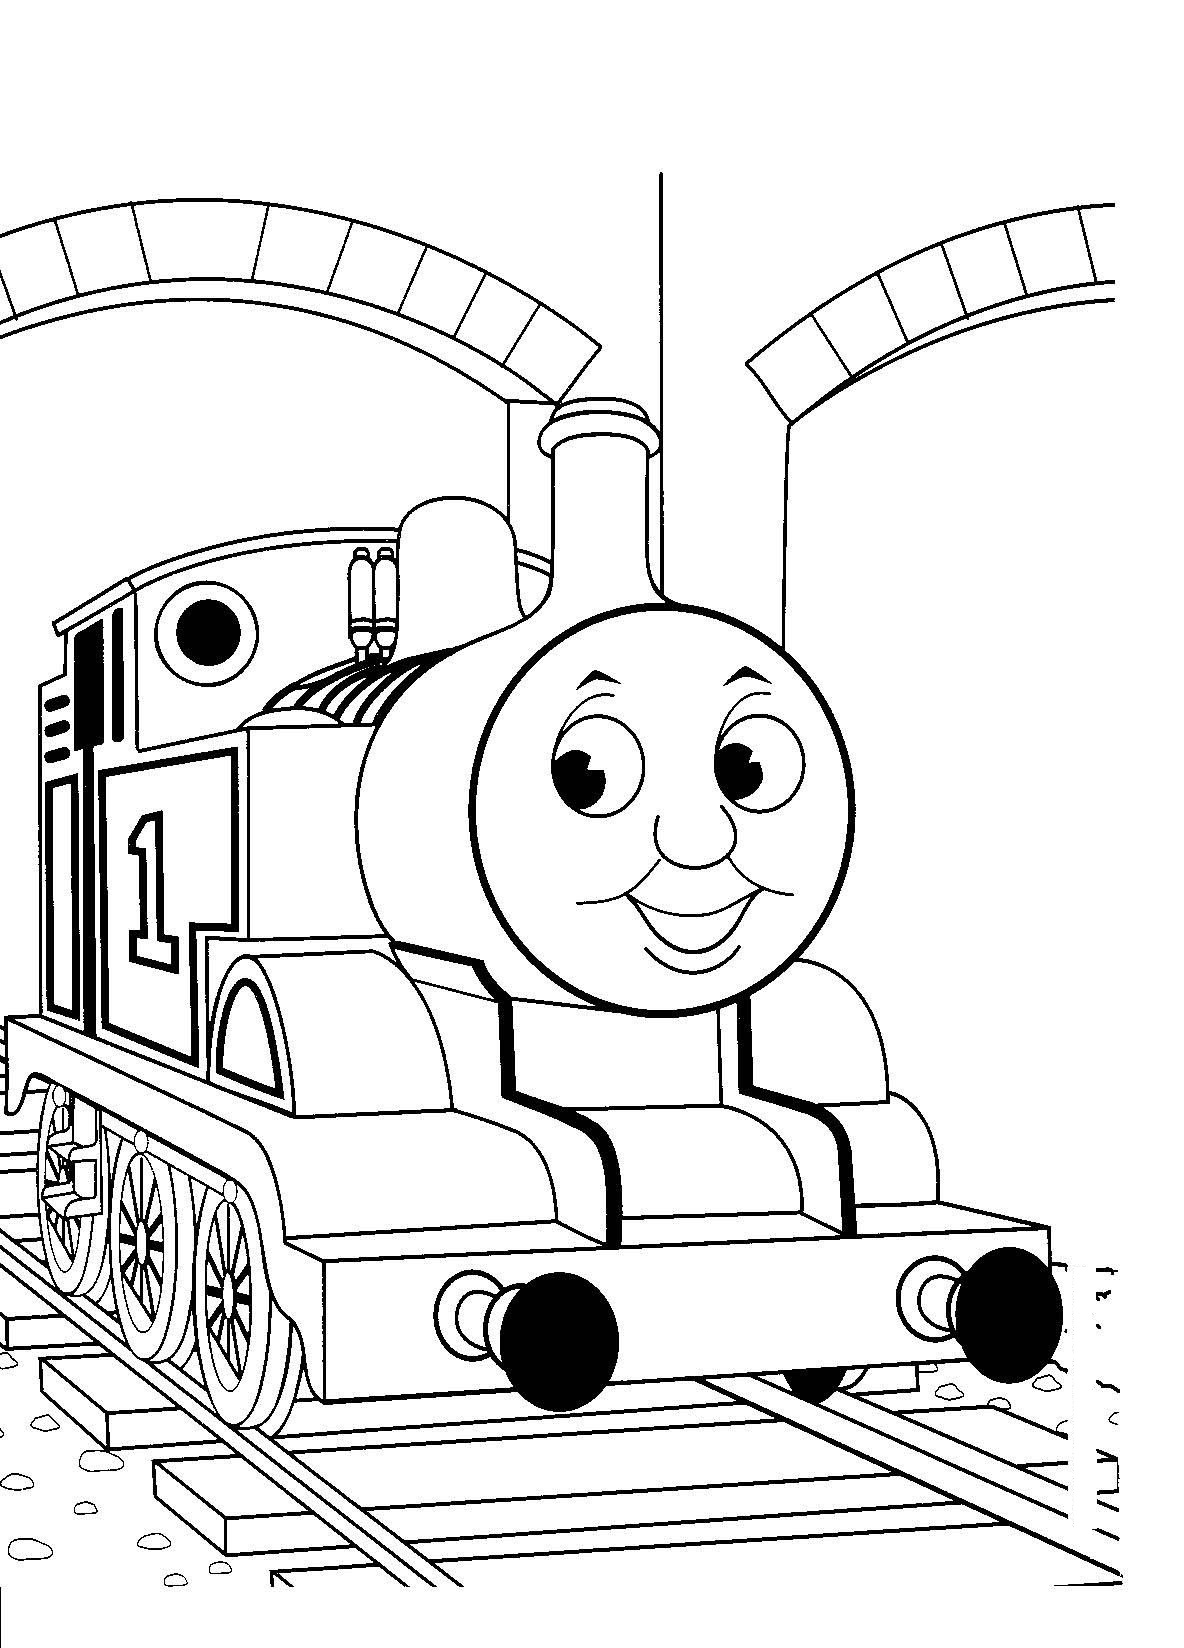 Printable Train Coloring Pages For Kids